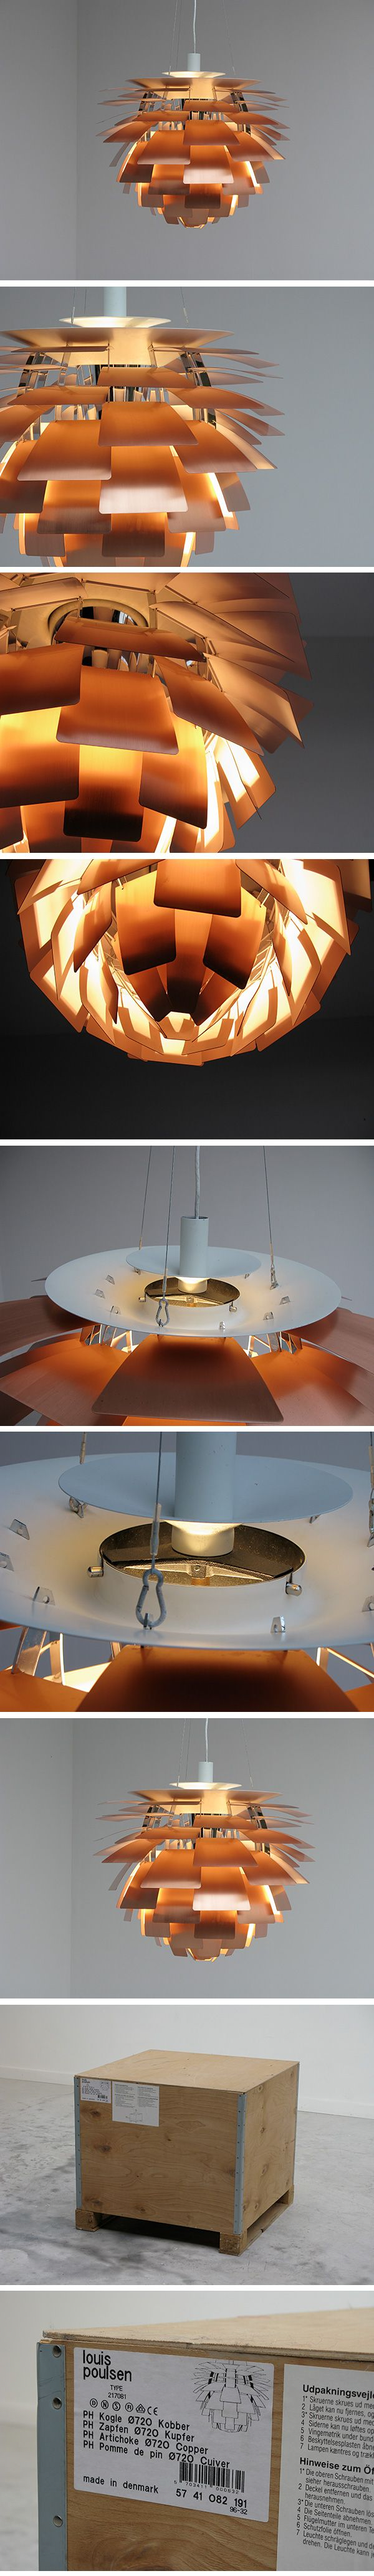 The PH Artichoke designed by Poul Henningsen, consists of 72 leaves.